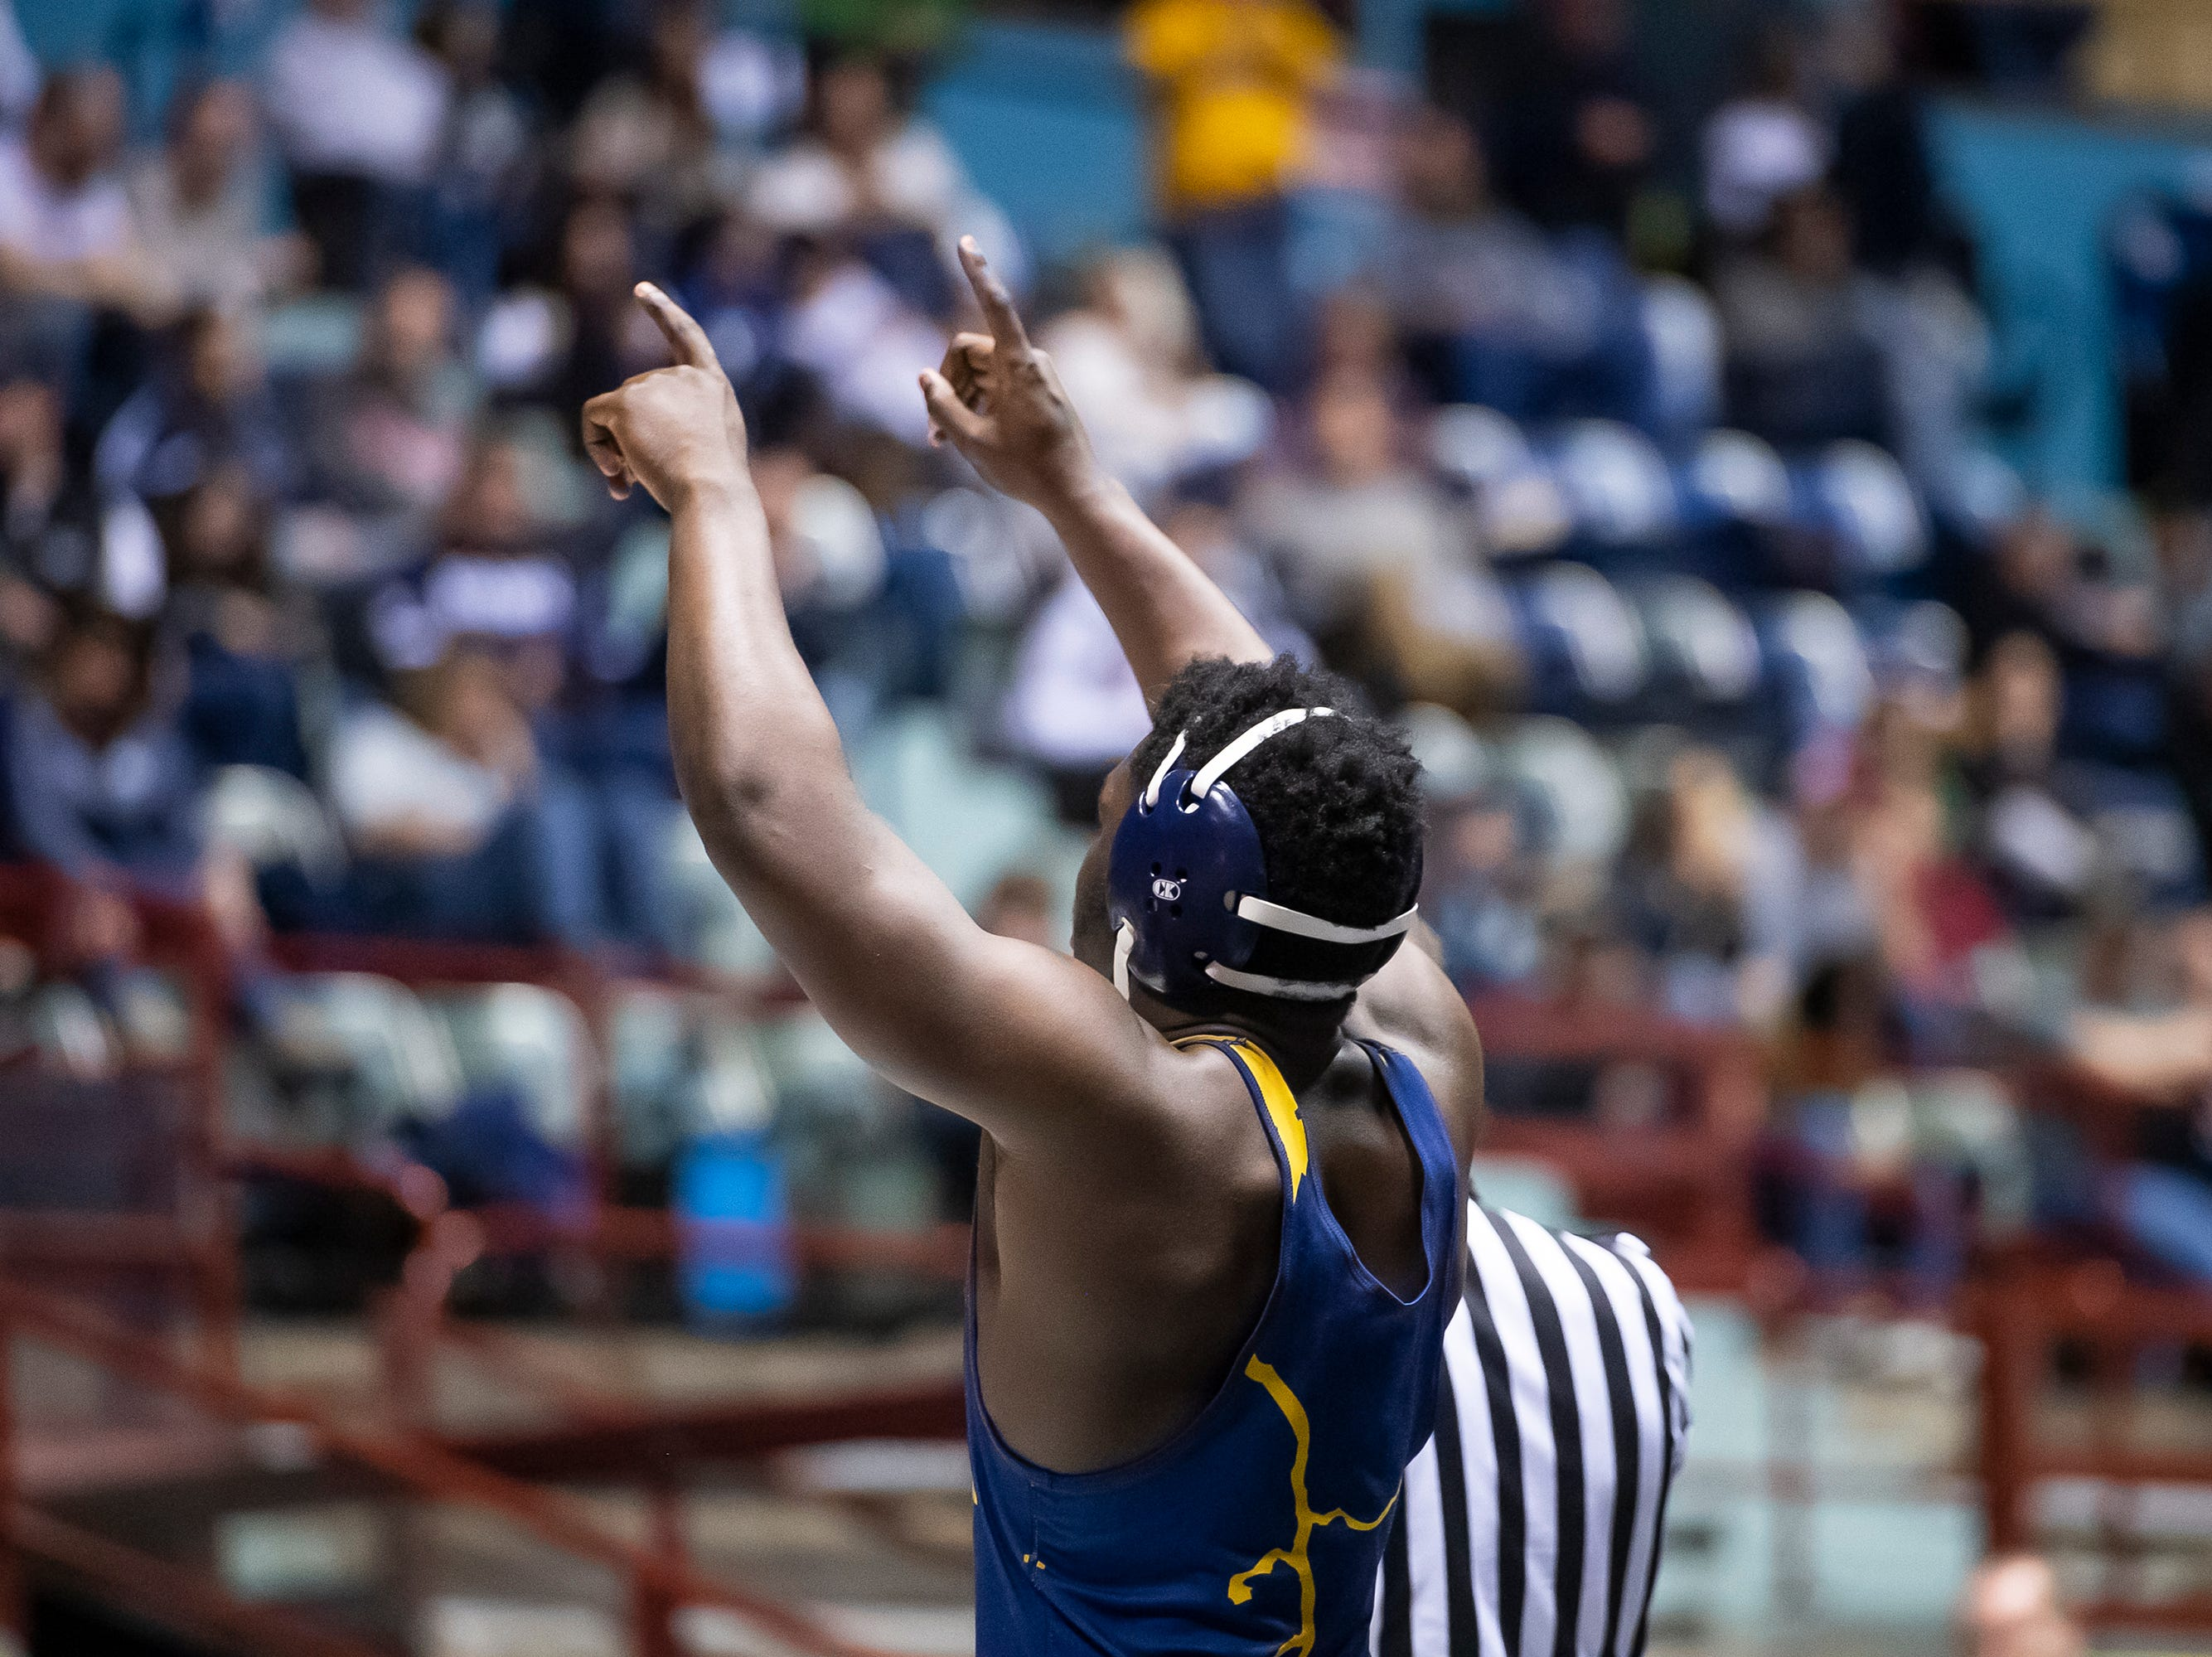 Littlestown's Carl Harris points to the crowd after defeating Hamburg's Brendan Hamilton during a 170-pound championship bout at the District 3 wrestling championships at Hersheypark Arena Saturday, February 23, 2019. Harris won by decision 7-4.